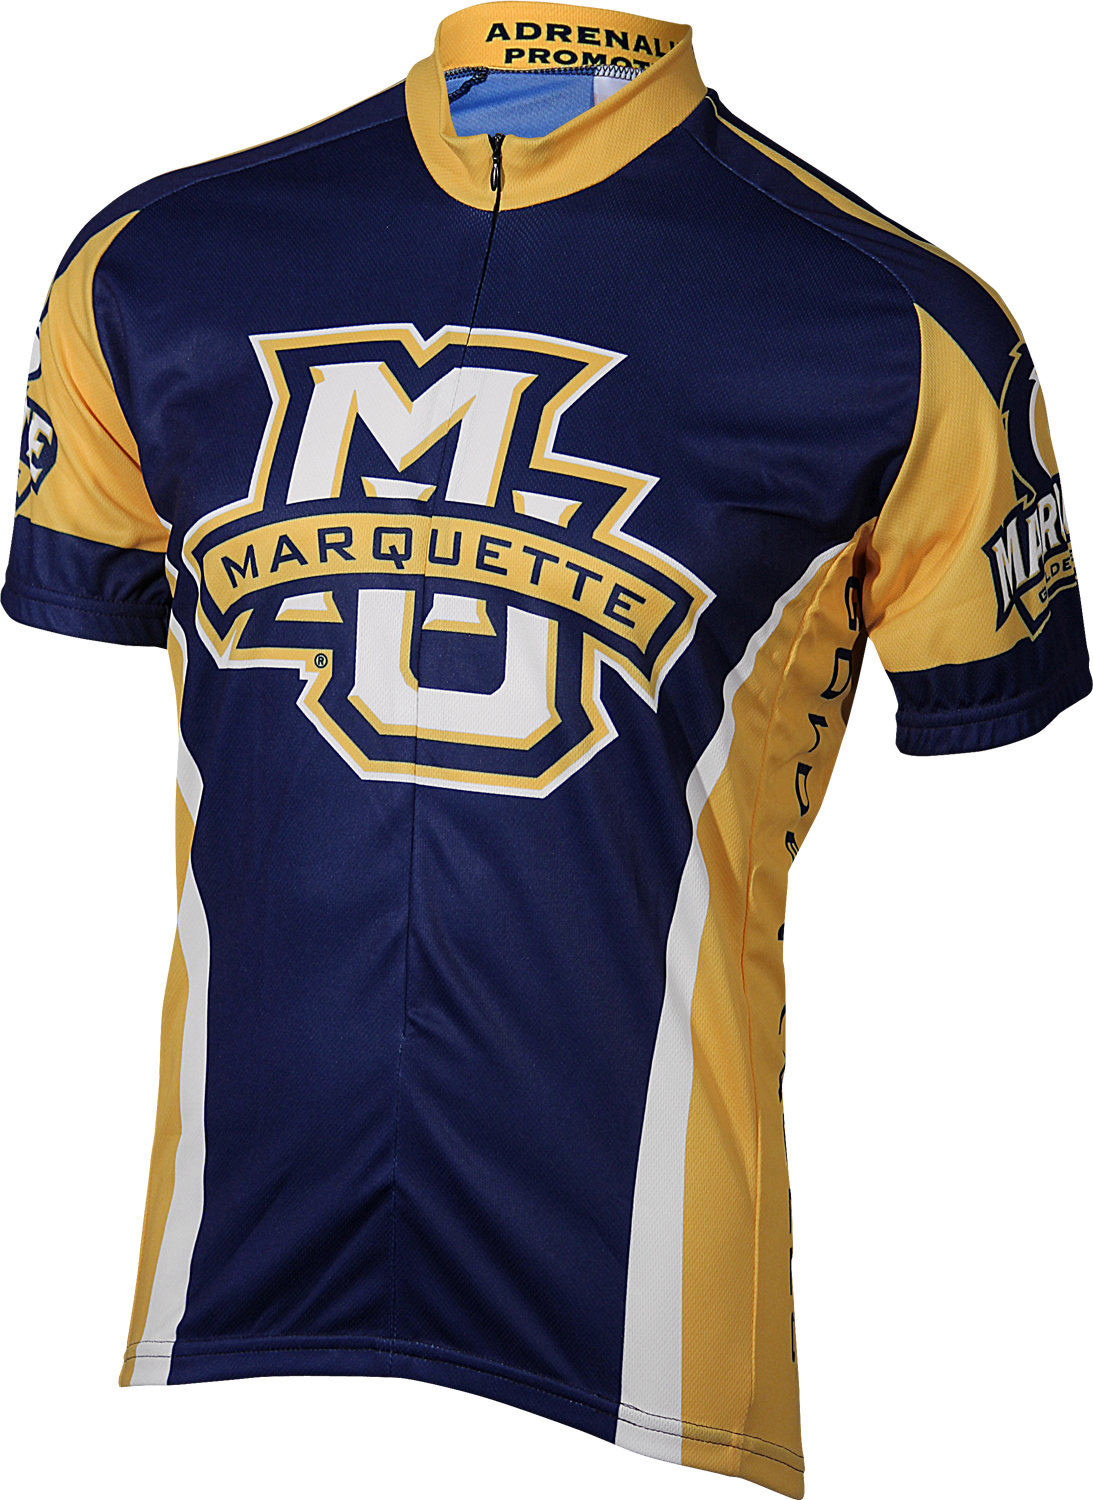 Marquette University Golden Eagles Cycling Jersey